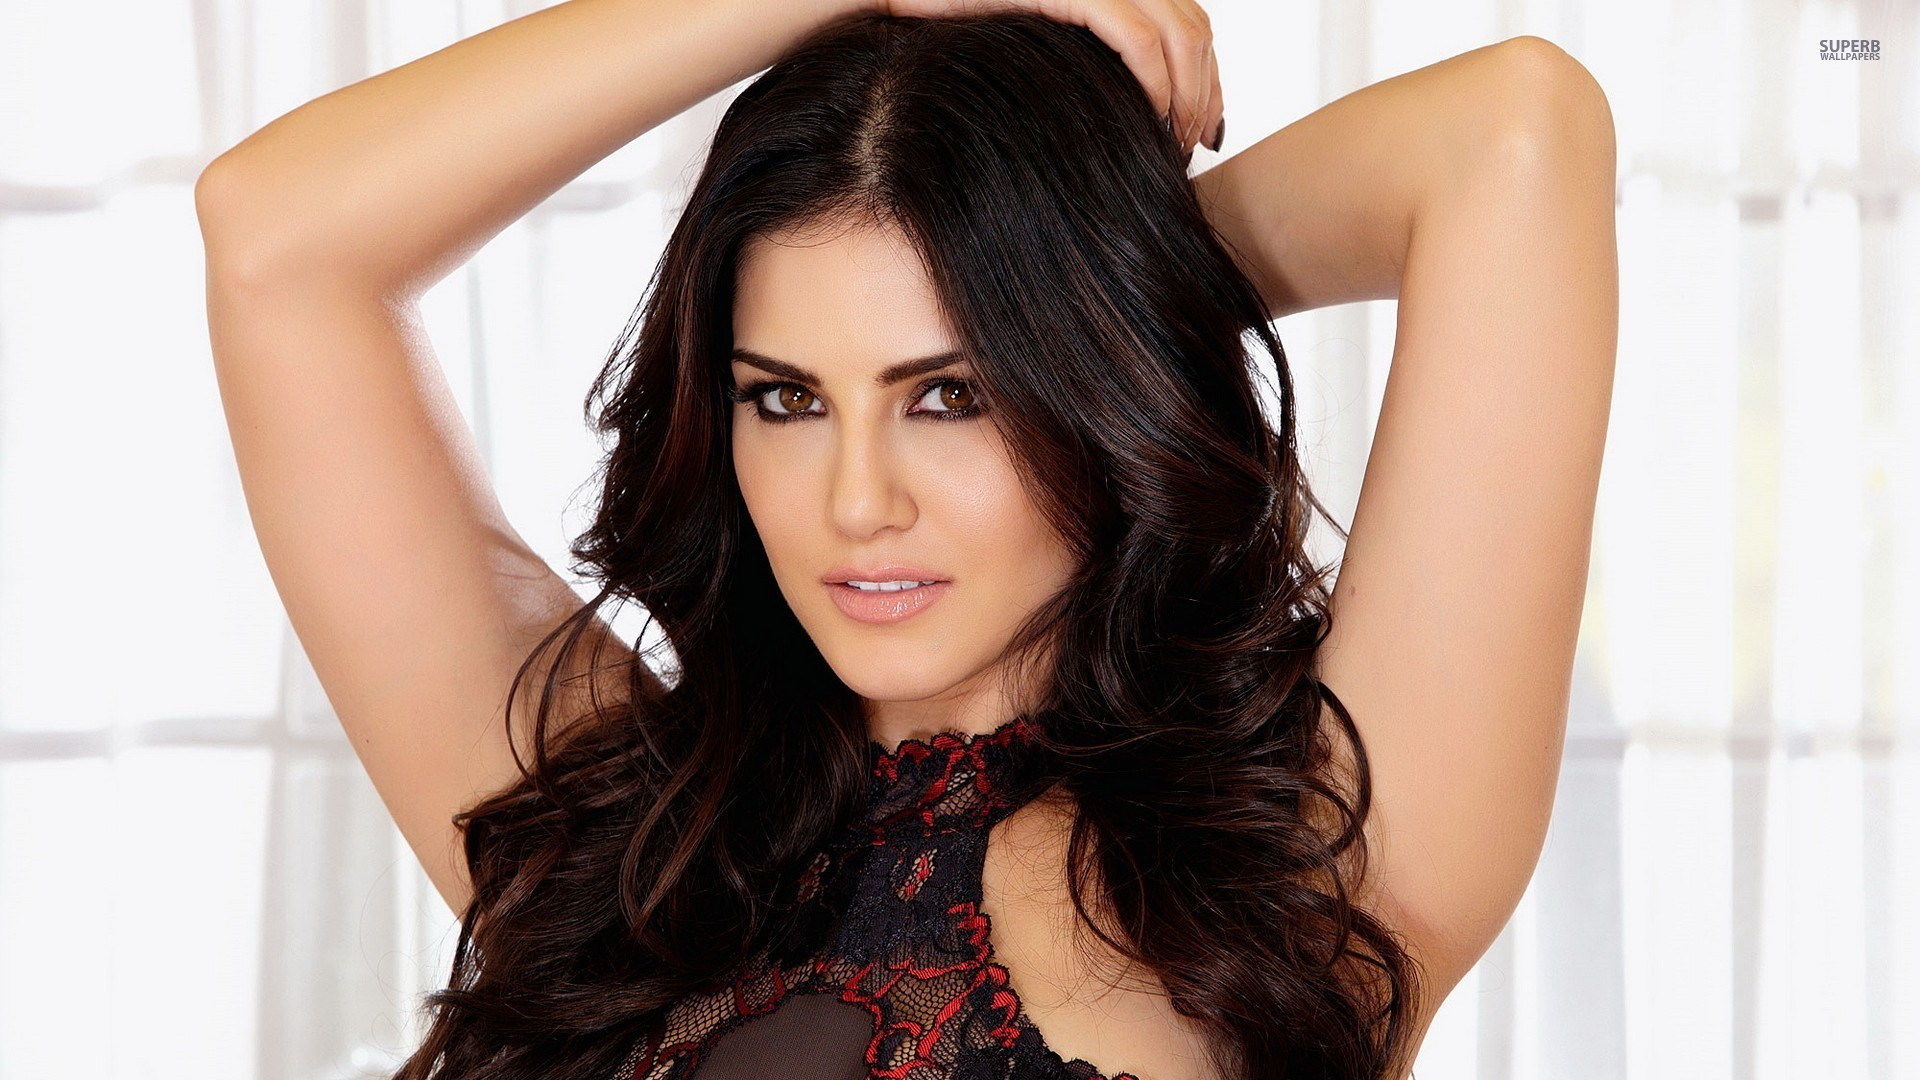 sunny leone wallpapers pictures images